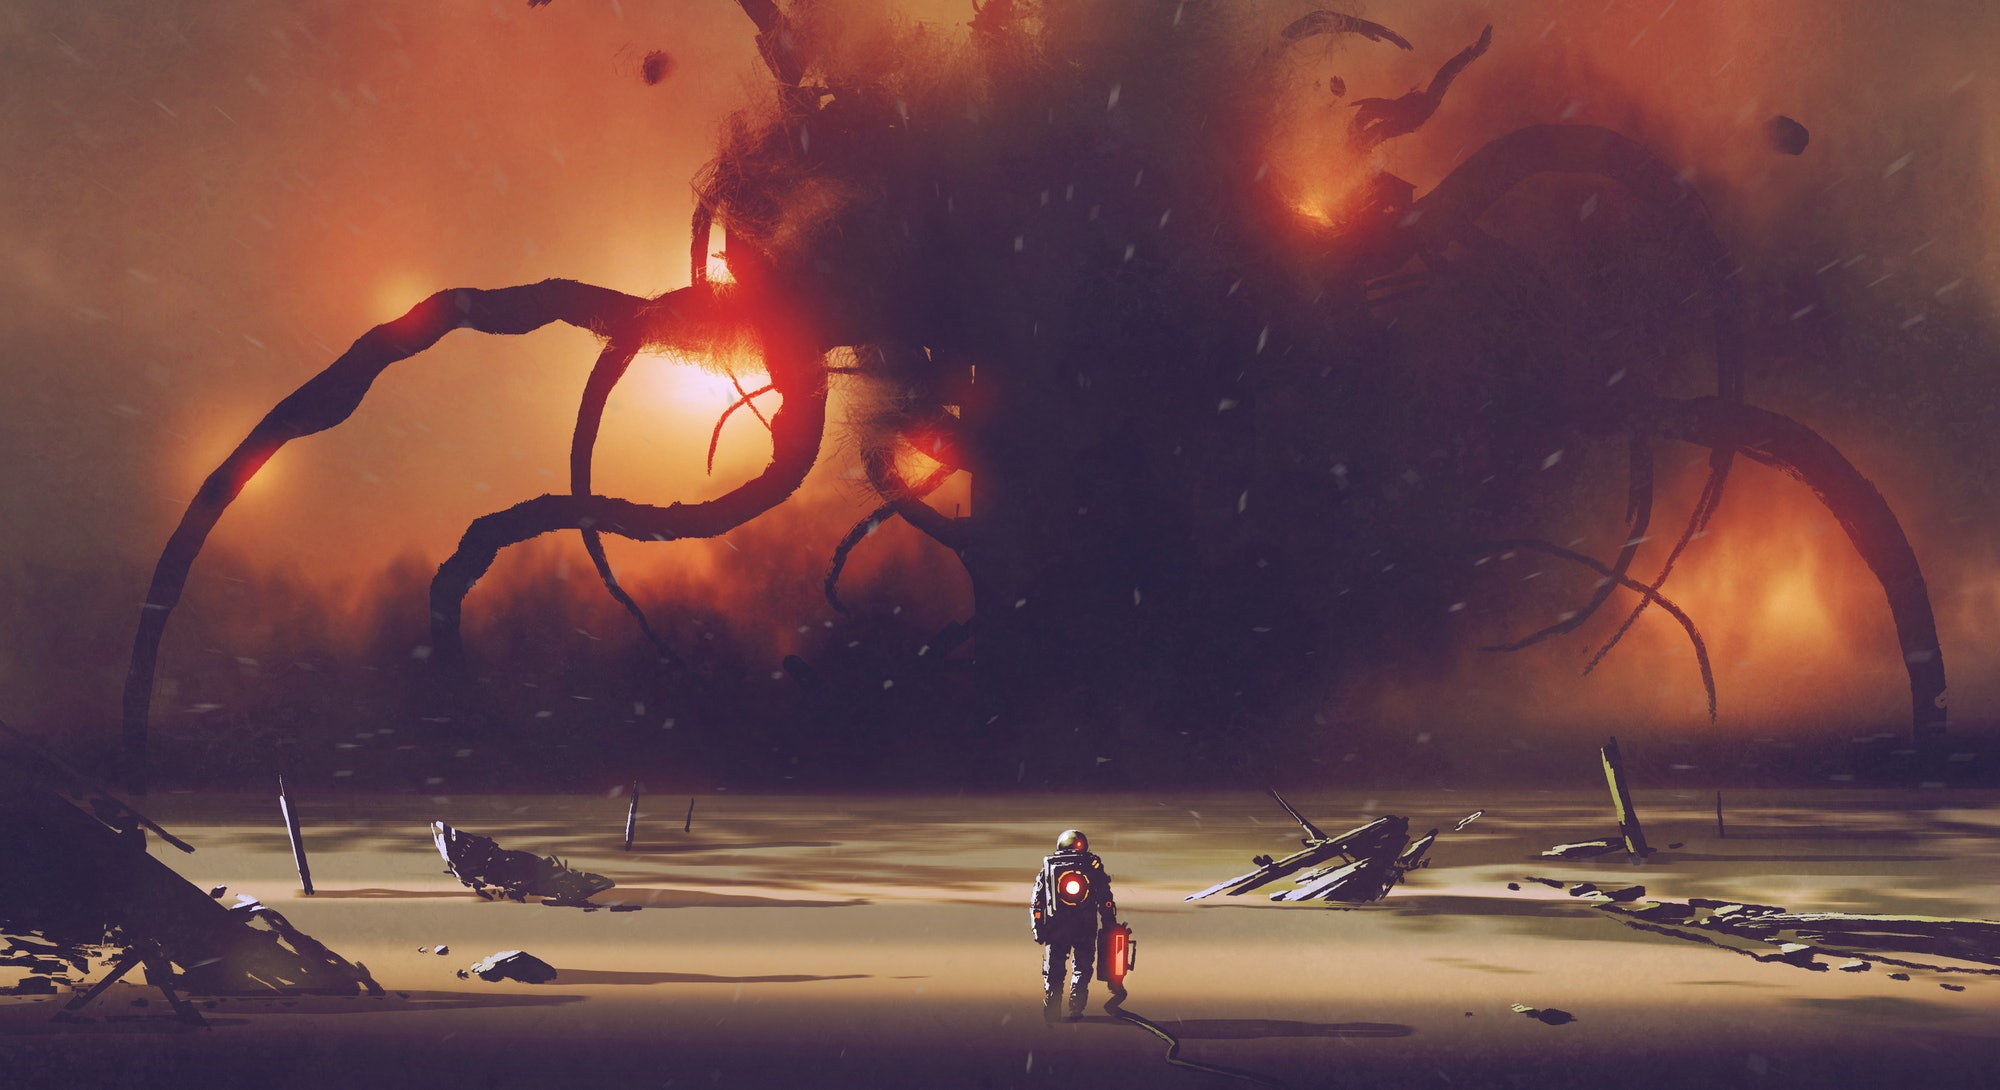 astronaut with a tech device heading to the giant monster at the horizon, digital art style, illustration painting